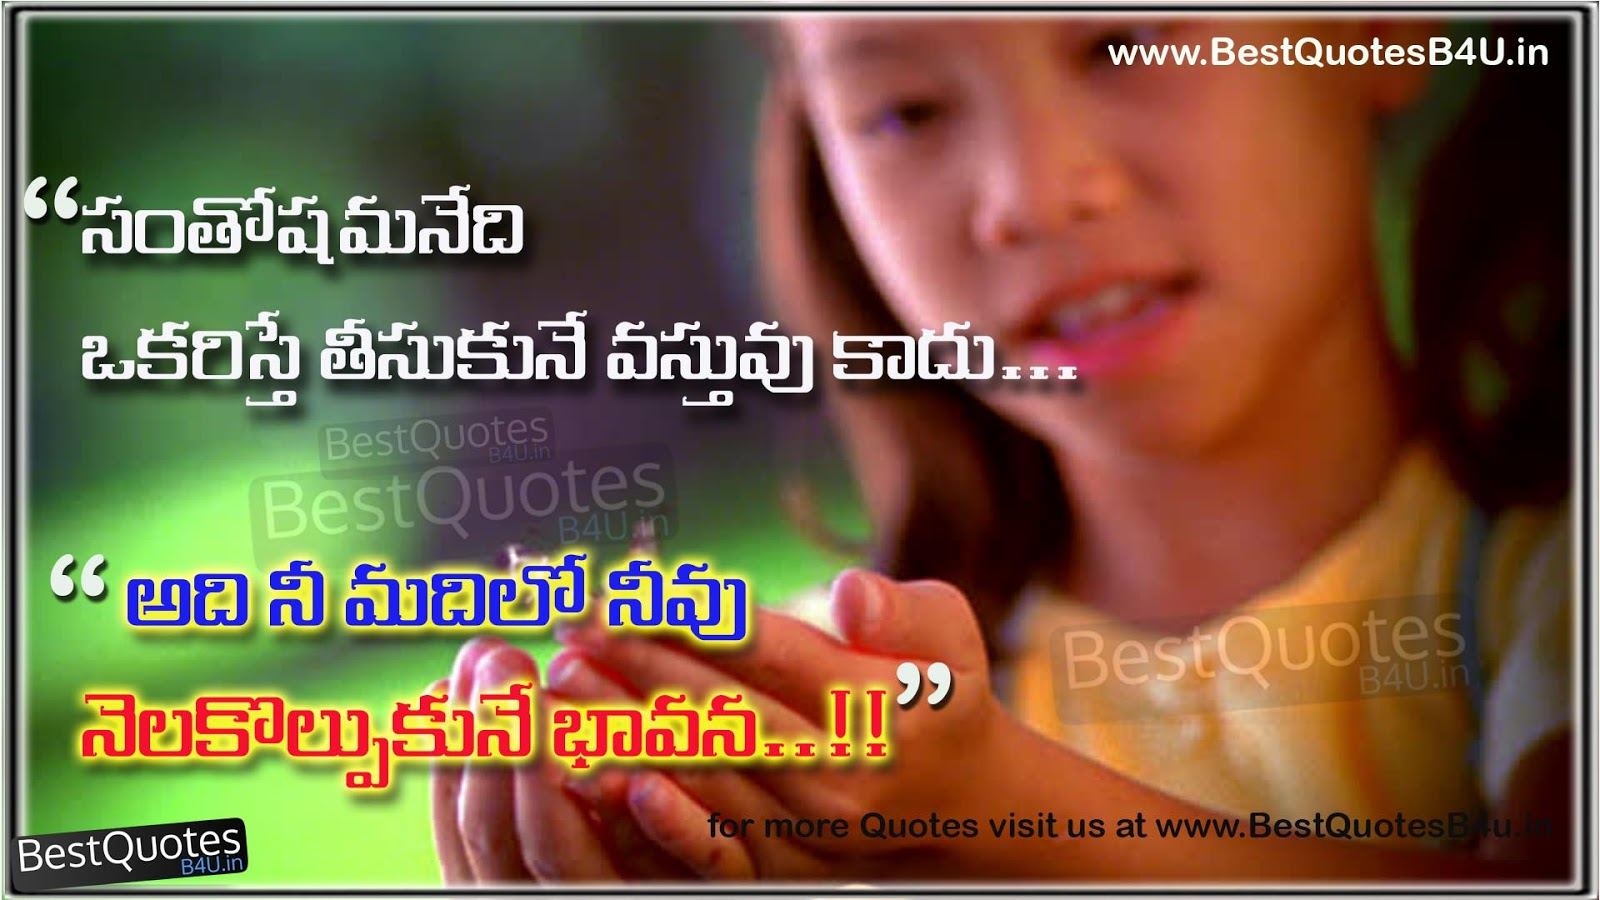 Happiness Quotes in Telugu  BestQuotesb4U  English